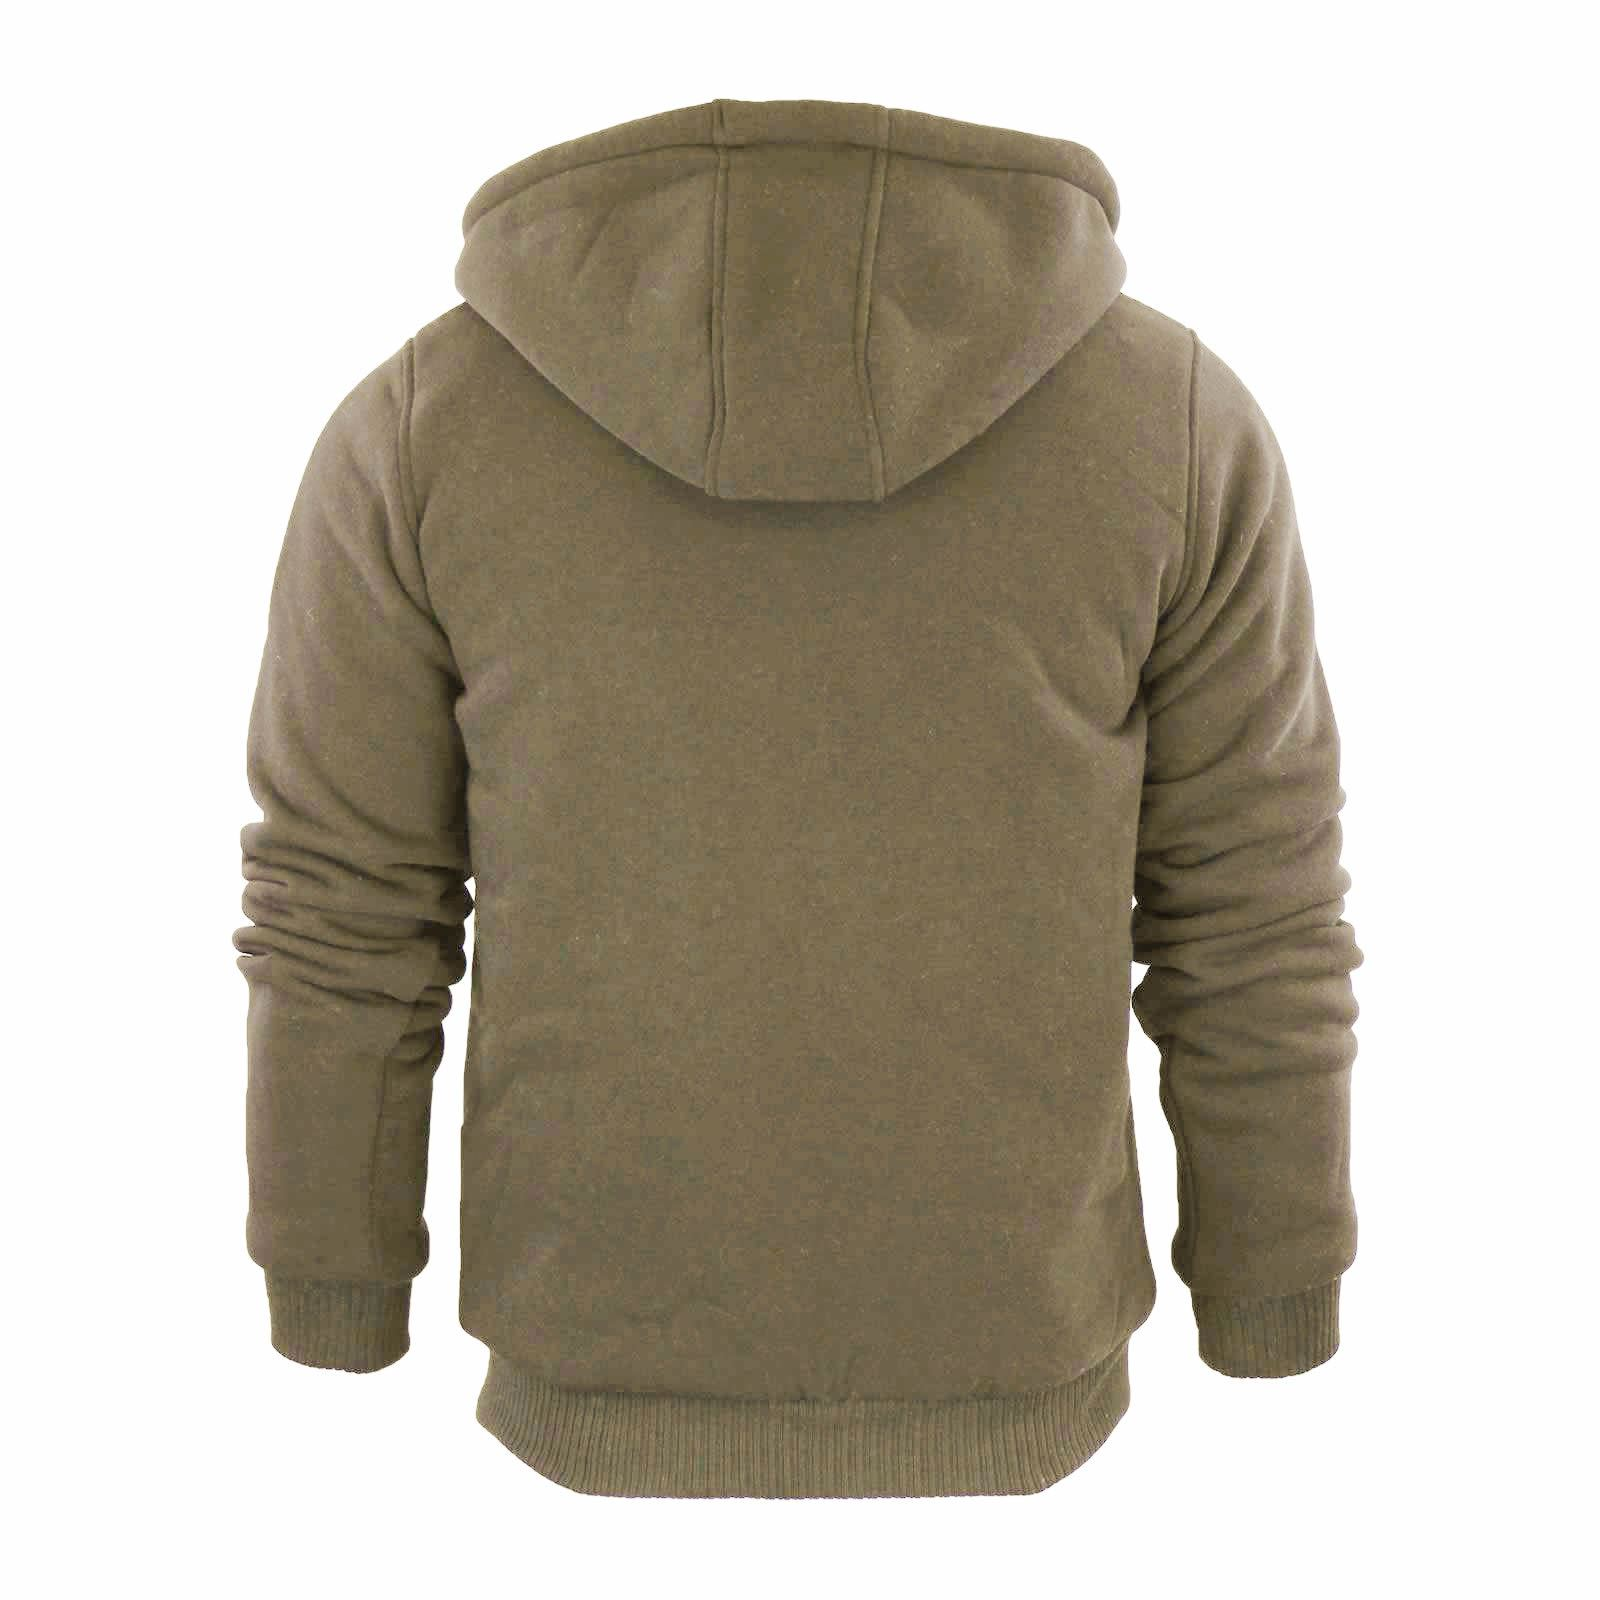 Mens-Hoodie-Brave-Soul-Zone-Sherpa-Fleece-Lined-Zip-Up-Hooded-Sweater thumbnail 15